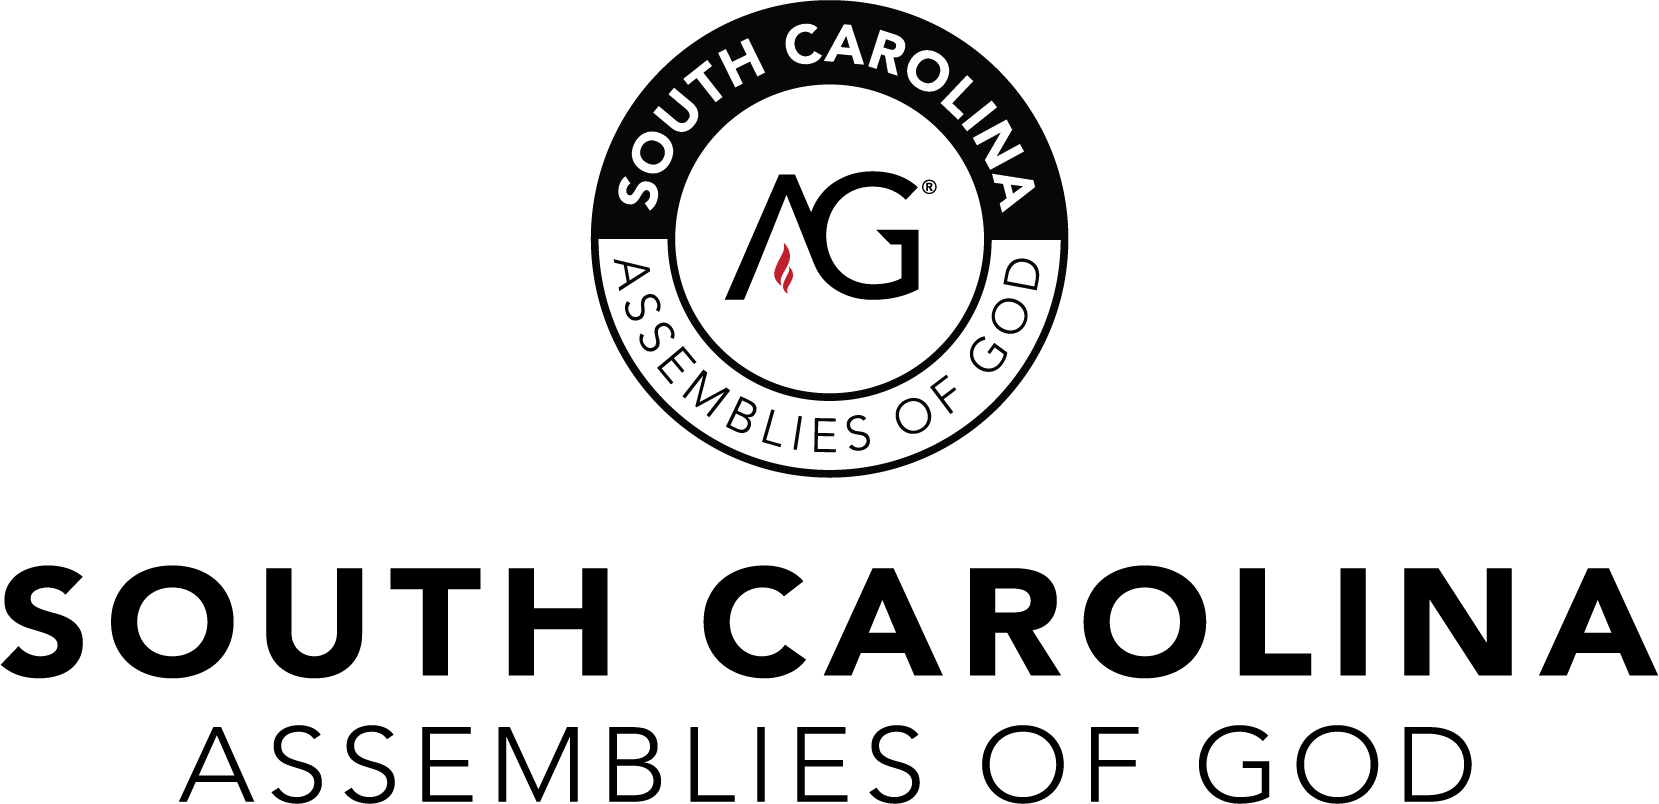 South Carolina Assemblies of God, SC Ministry Network, SC District, SC Church Planters, SC Churches